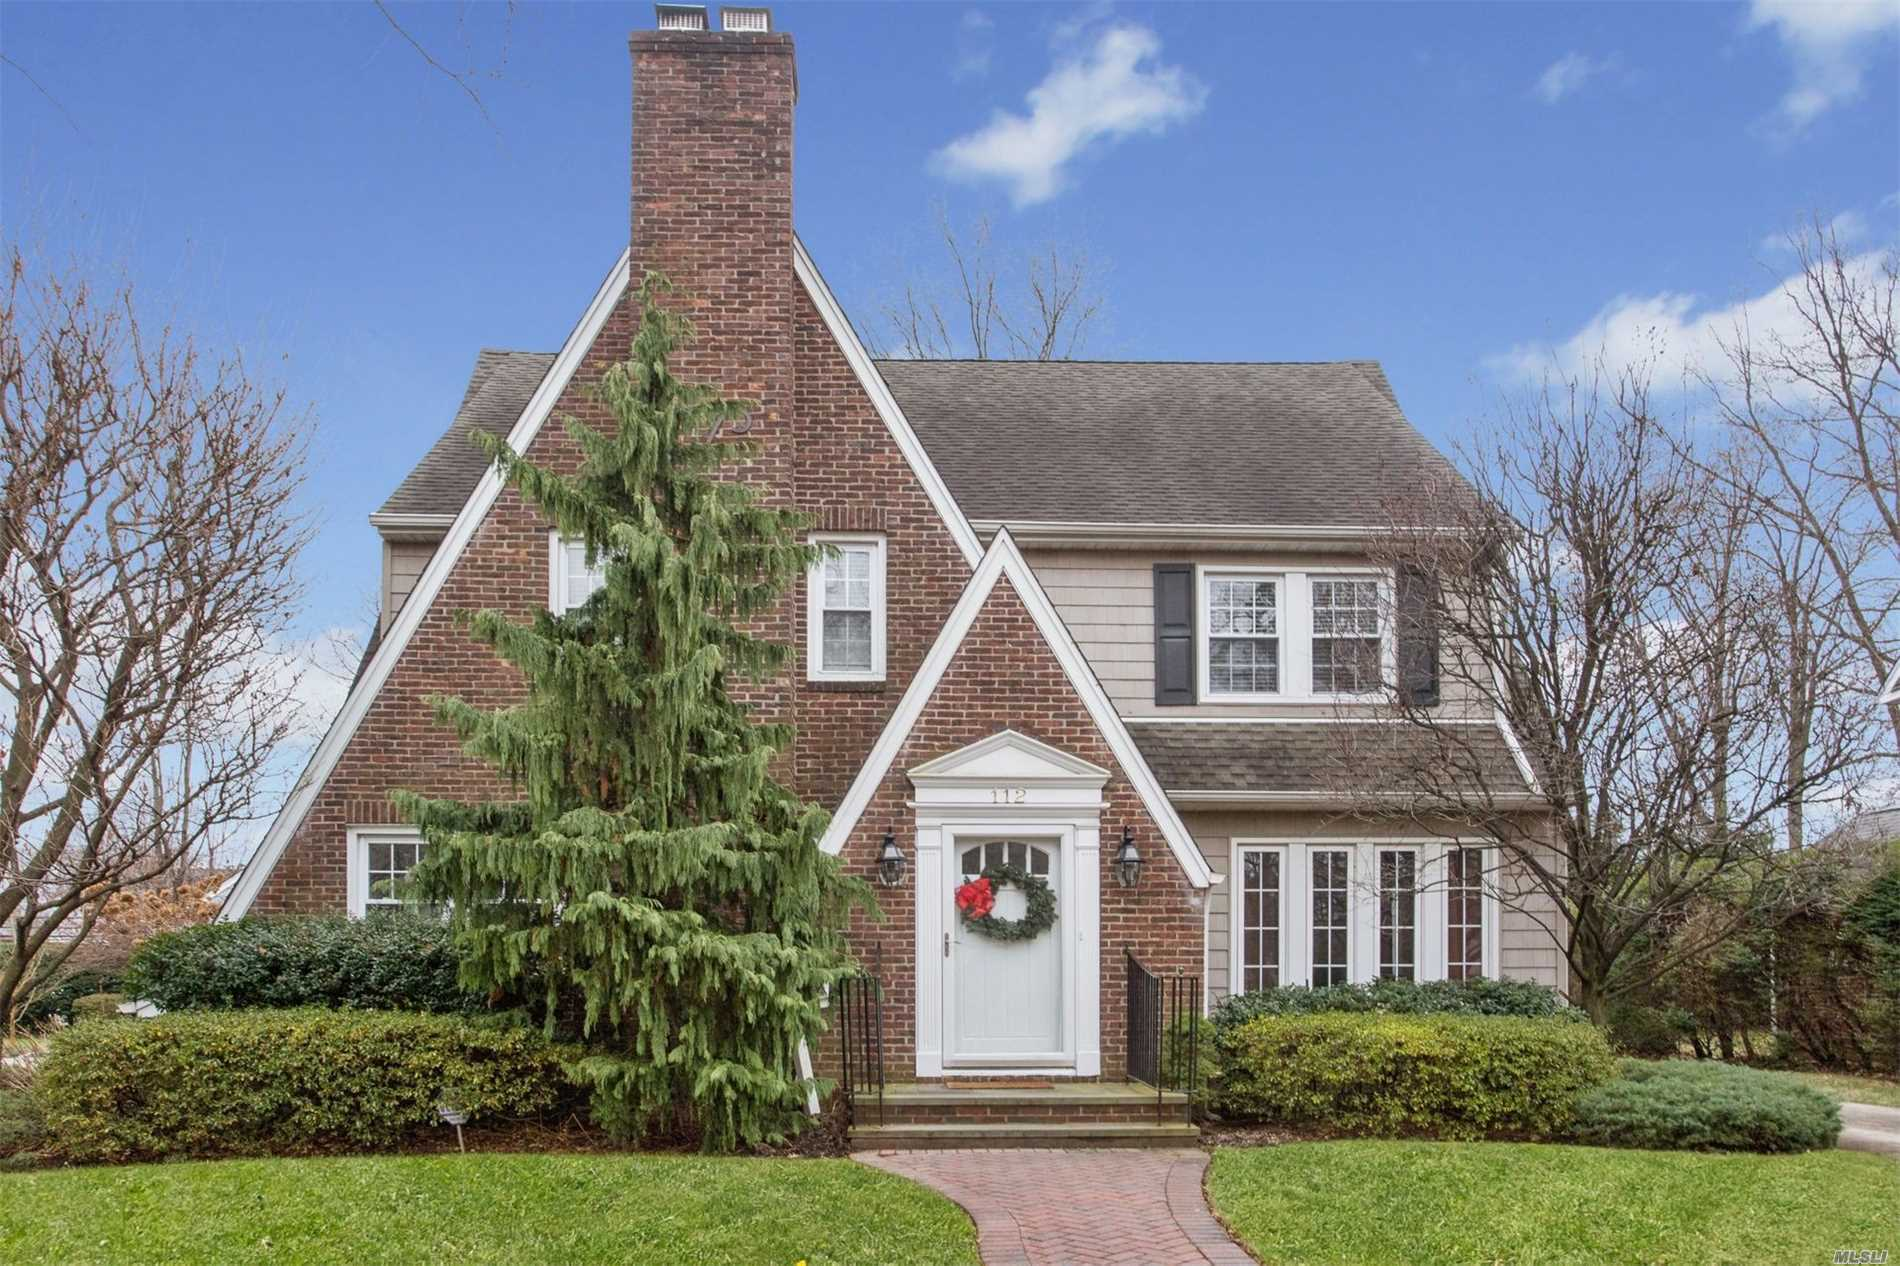 This Beautiful Colonial Situated Midblock On A Quiet Tree Lined Street Offers An Abundance Of Living & Entertaining Areas. The 1st Flr Features Lr W/Fp, Dr, Eik, Den & Spacious Family Room. 2nd Fl Mbr Suite W/Gorgeous Bathroom & 2 Addl Brs W/Bath. 3rd Fl Nice Size Bedroom, Bath & Storage Space. The Bsmt Rec Rm & Stone Patio W/ Landscaped Backyard On The Deep Lot Are Perfect For Entertaining. The Home Is Proximate To Shopping, Transportation, The School & The Park - A Truly Exceptional Value!